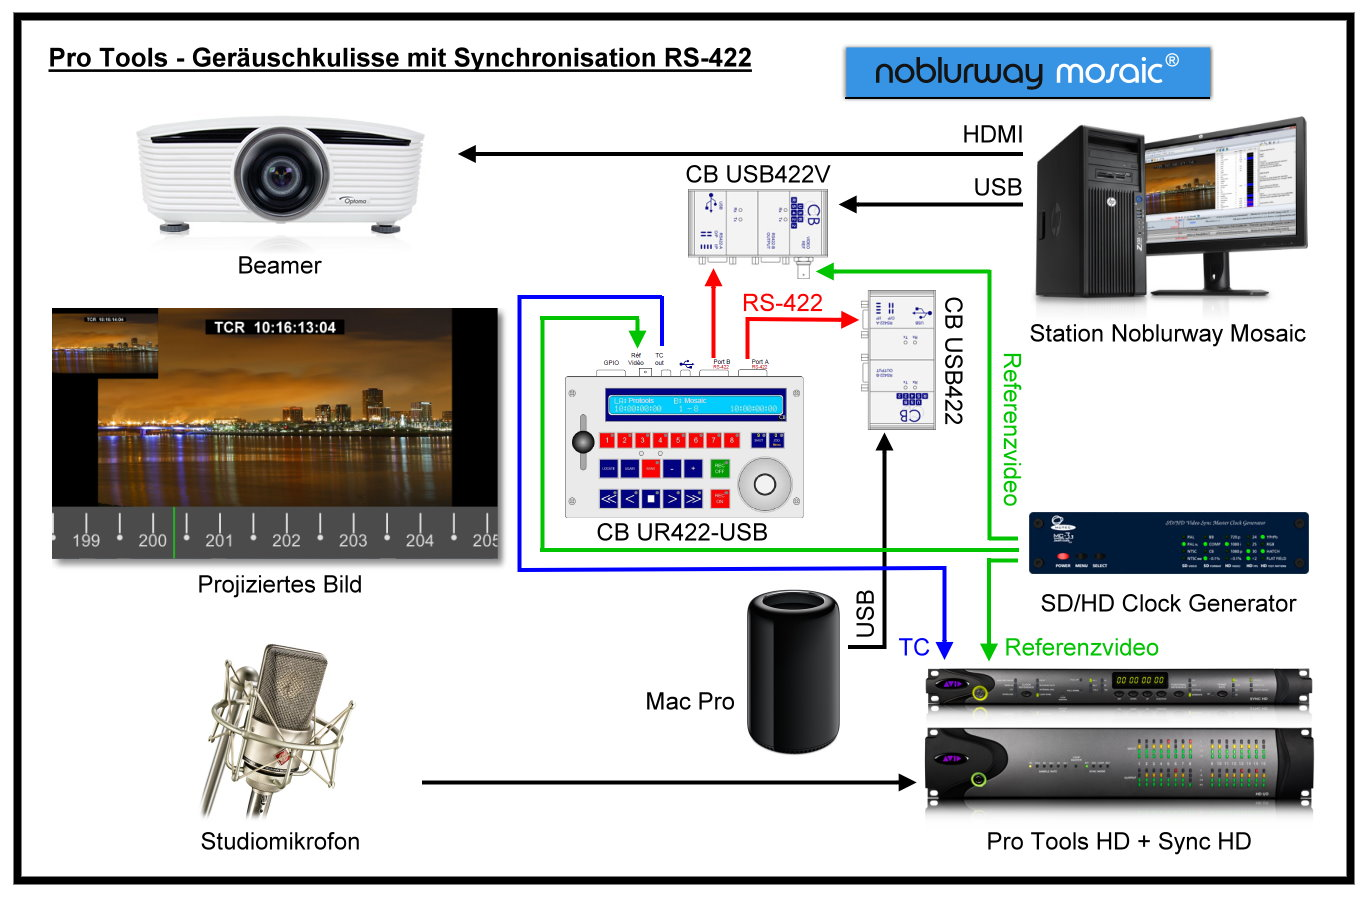 Diagramm: Pro Tools Geräuschkulisse mit Synchronisation RS422